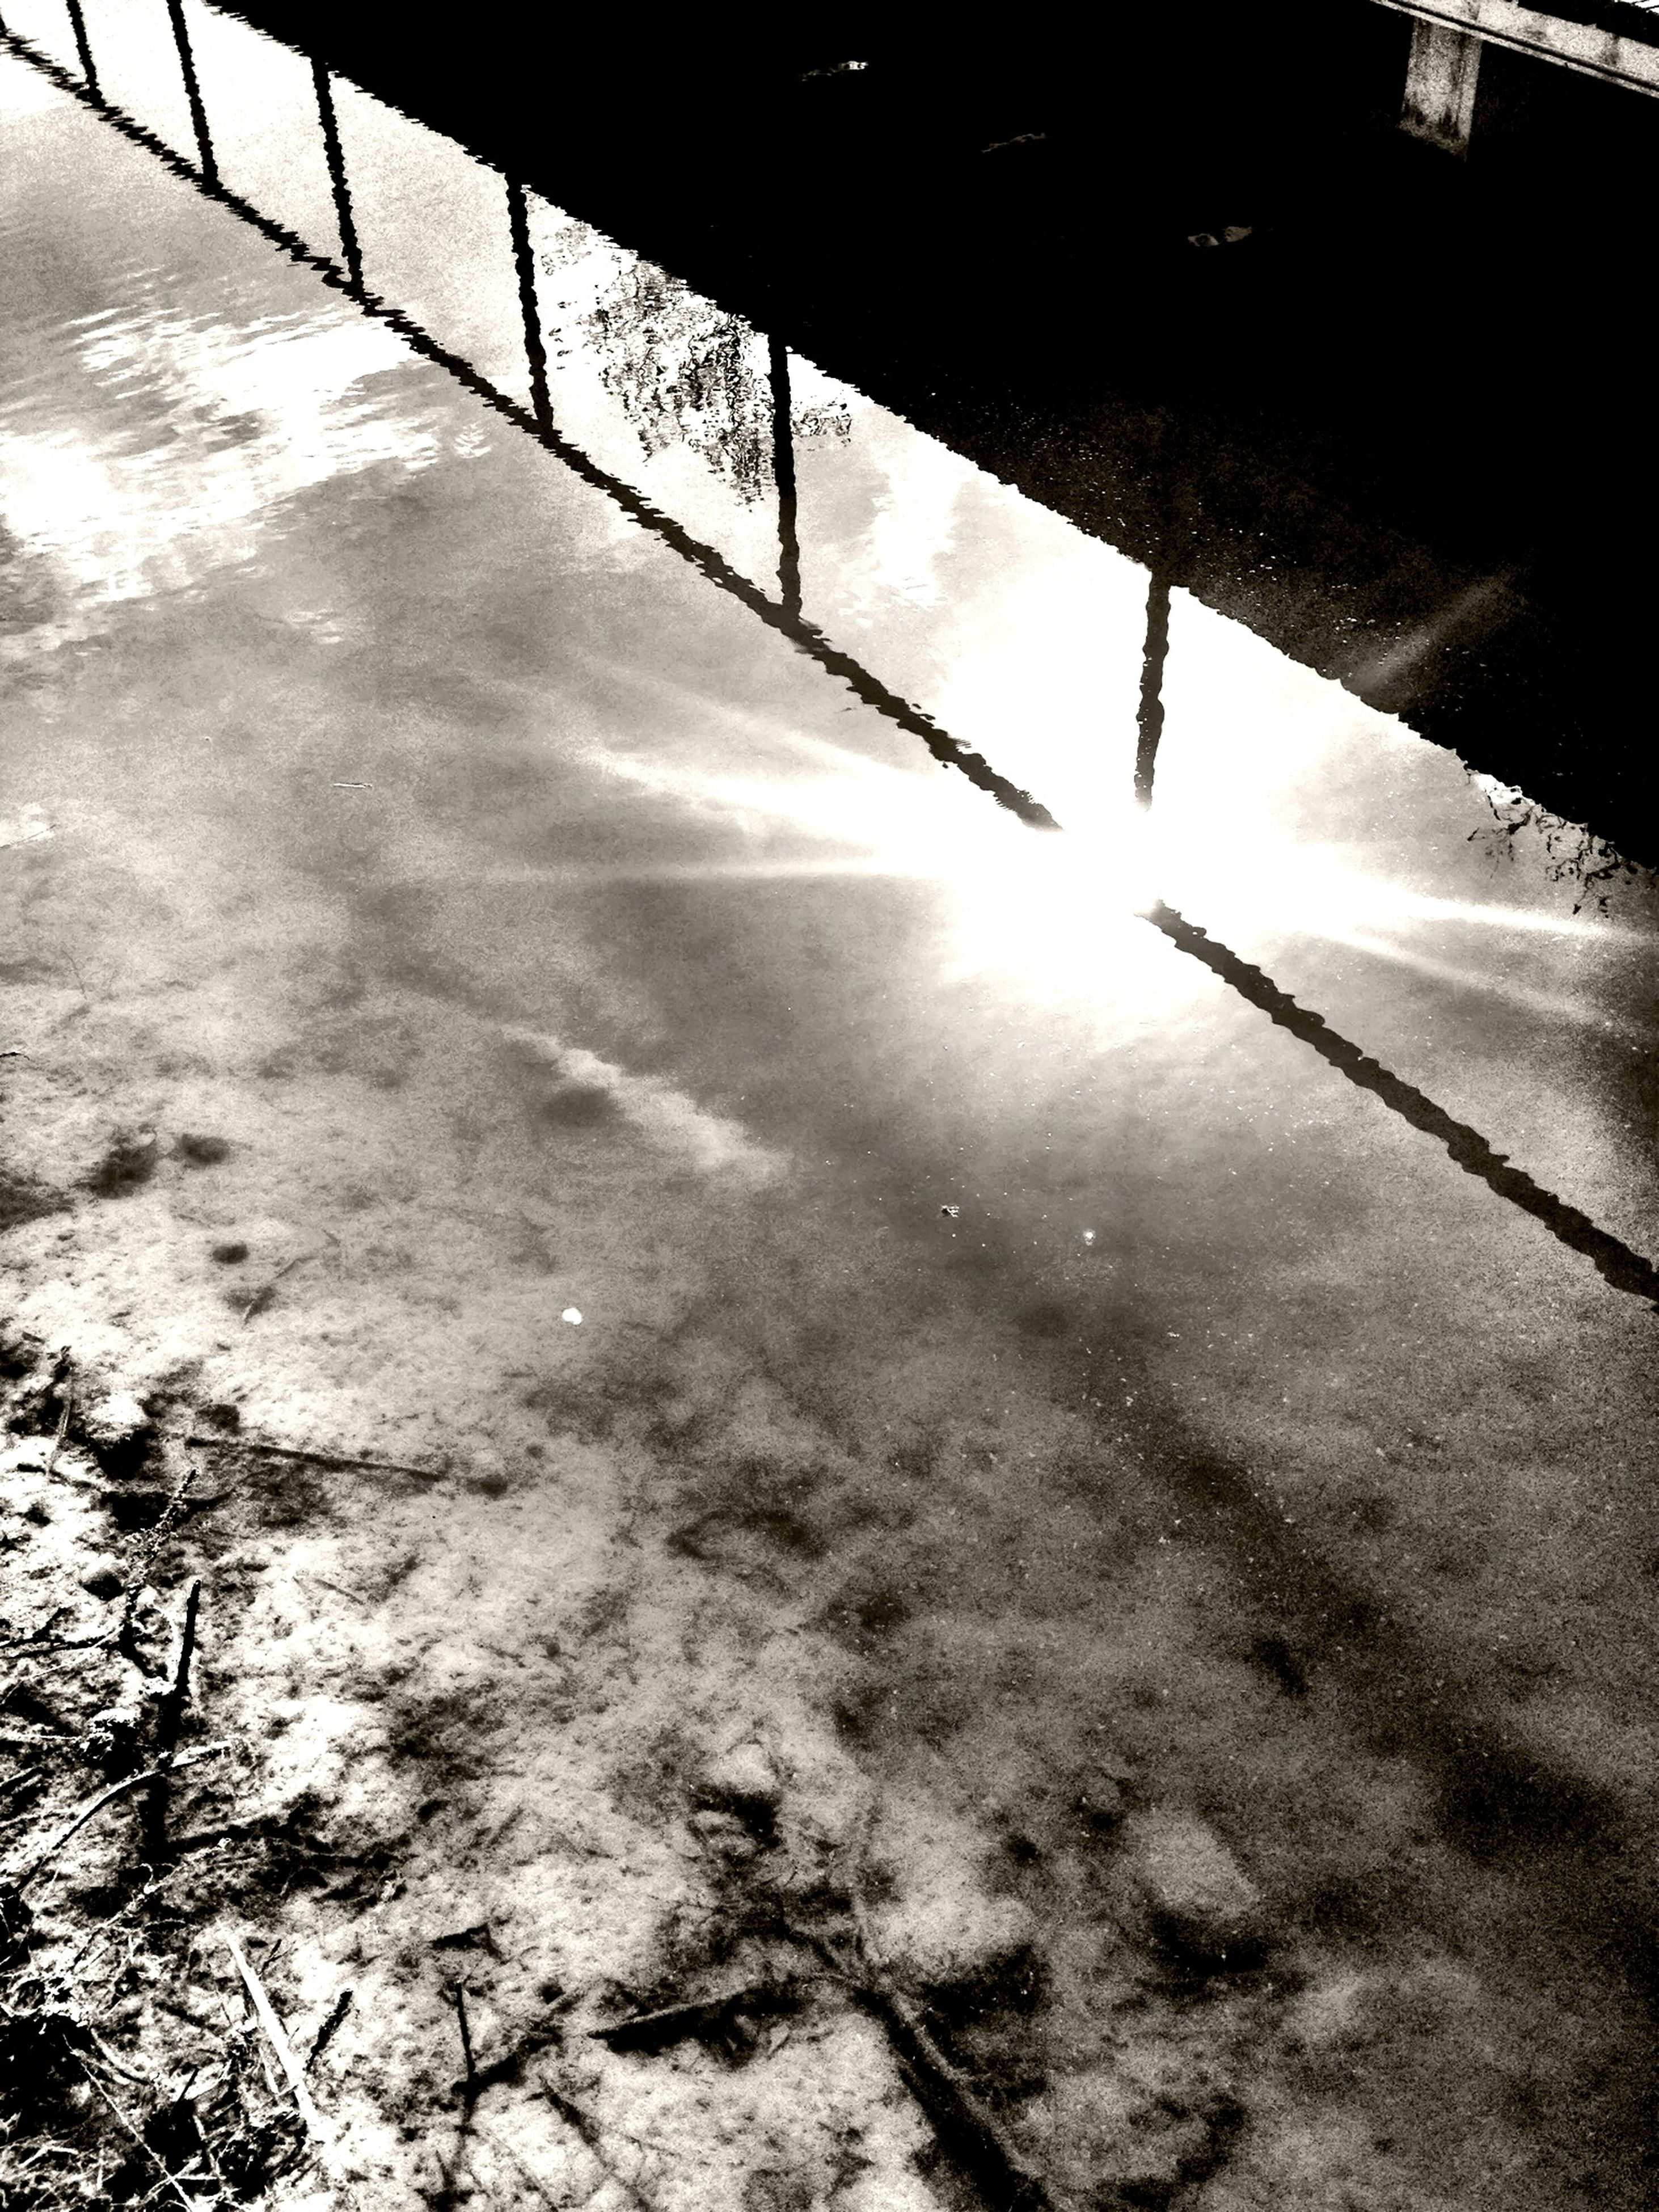 water, reflection, puddle, high angle view, wet, street, shadow, sunlight, rain, outdoors, season, road, built structure, day, nature, city, sidewalk, river, weather, no people